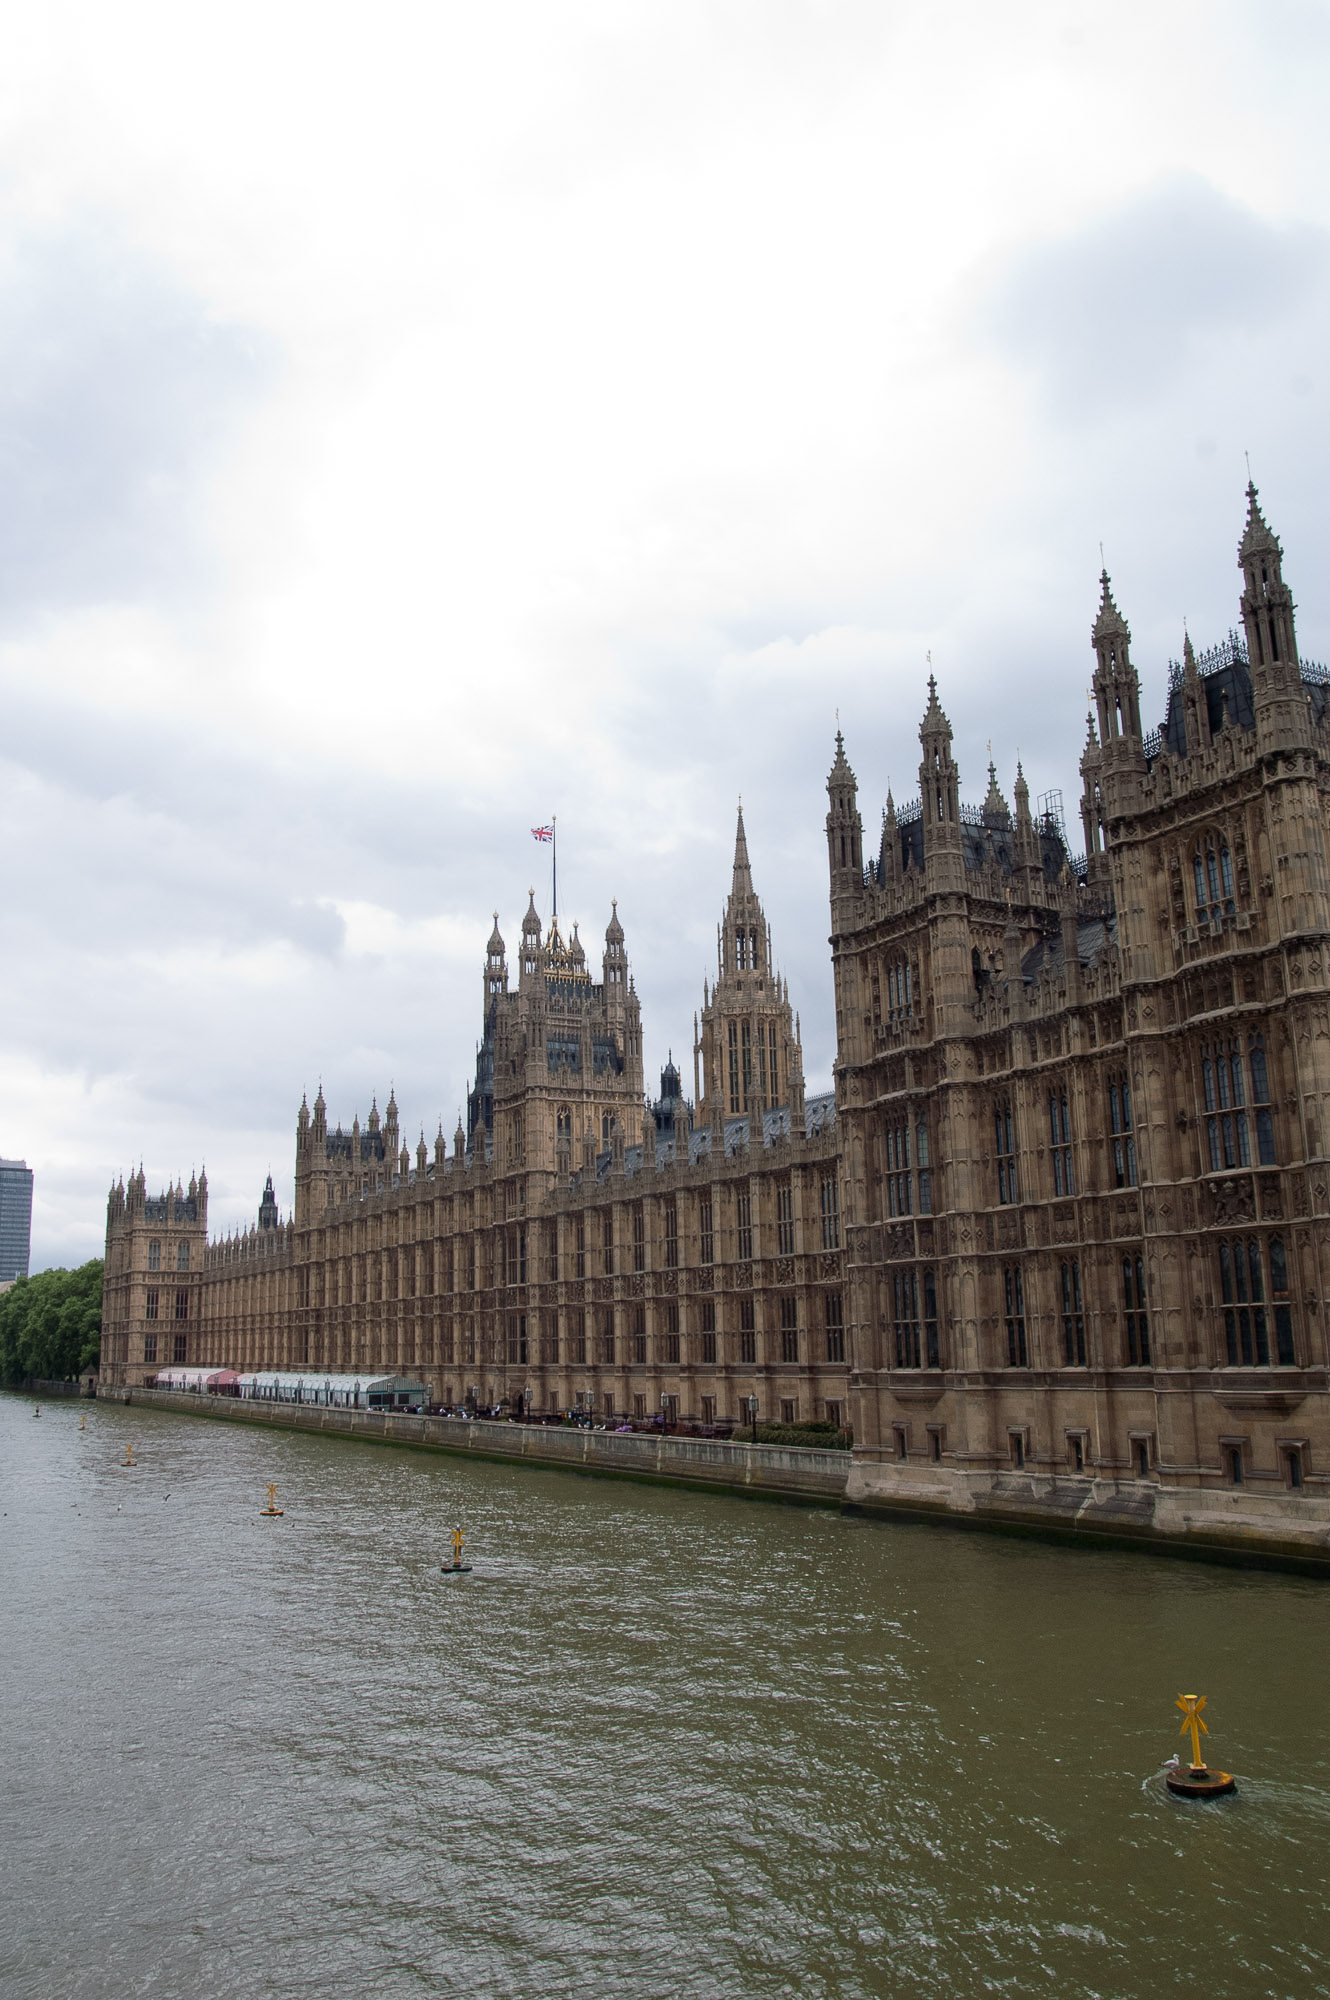 Houses of Parliament III